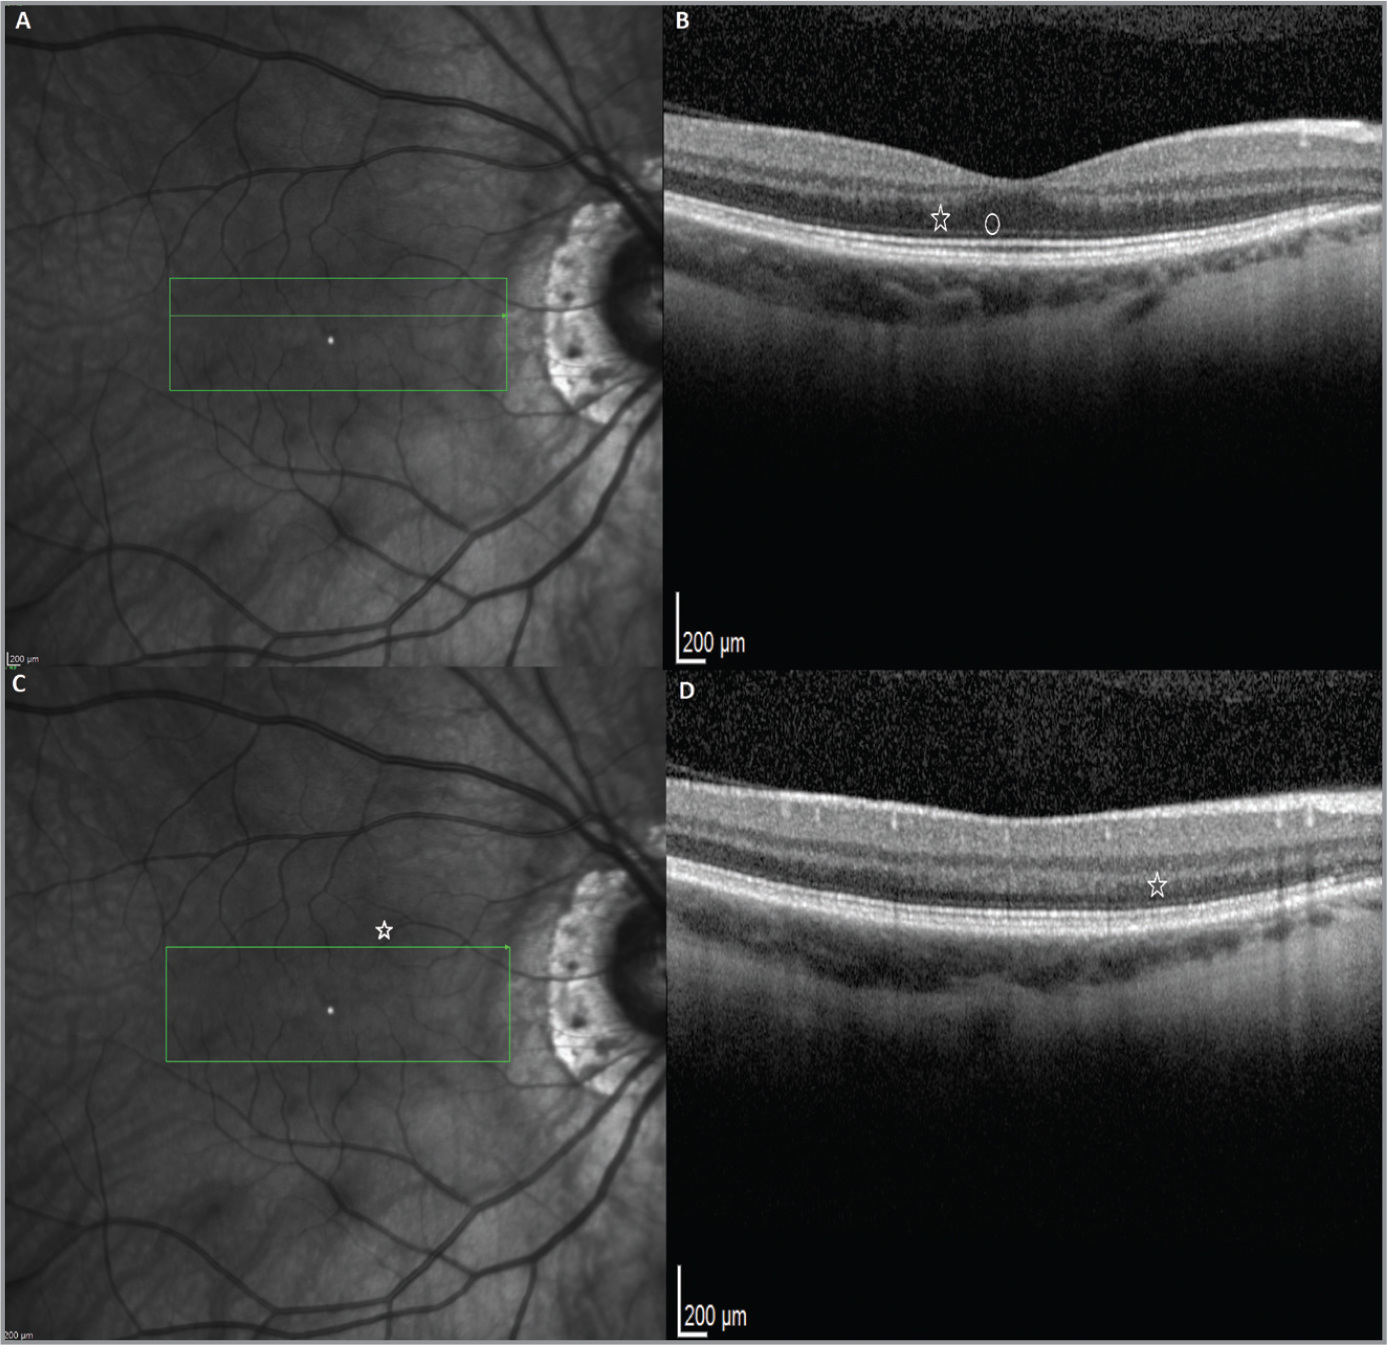 Seven months following the 2-year follow-up, the infrared radiance lesions have resolved (A, B). Many of the outer segment / retinal pigment epithelium interface defects had improved (B) with residual mild disruption of the interface superiorly to the macula (star) (D).